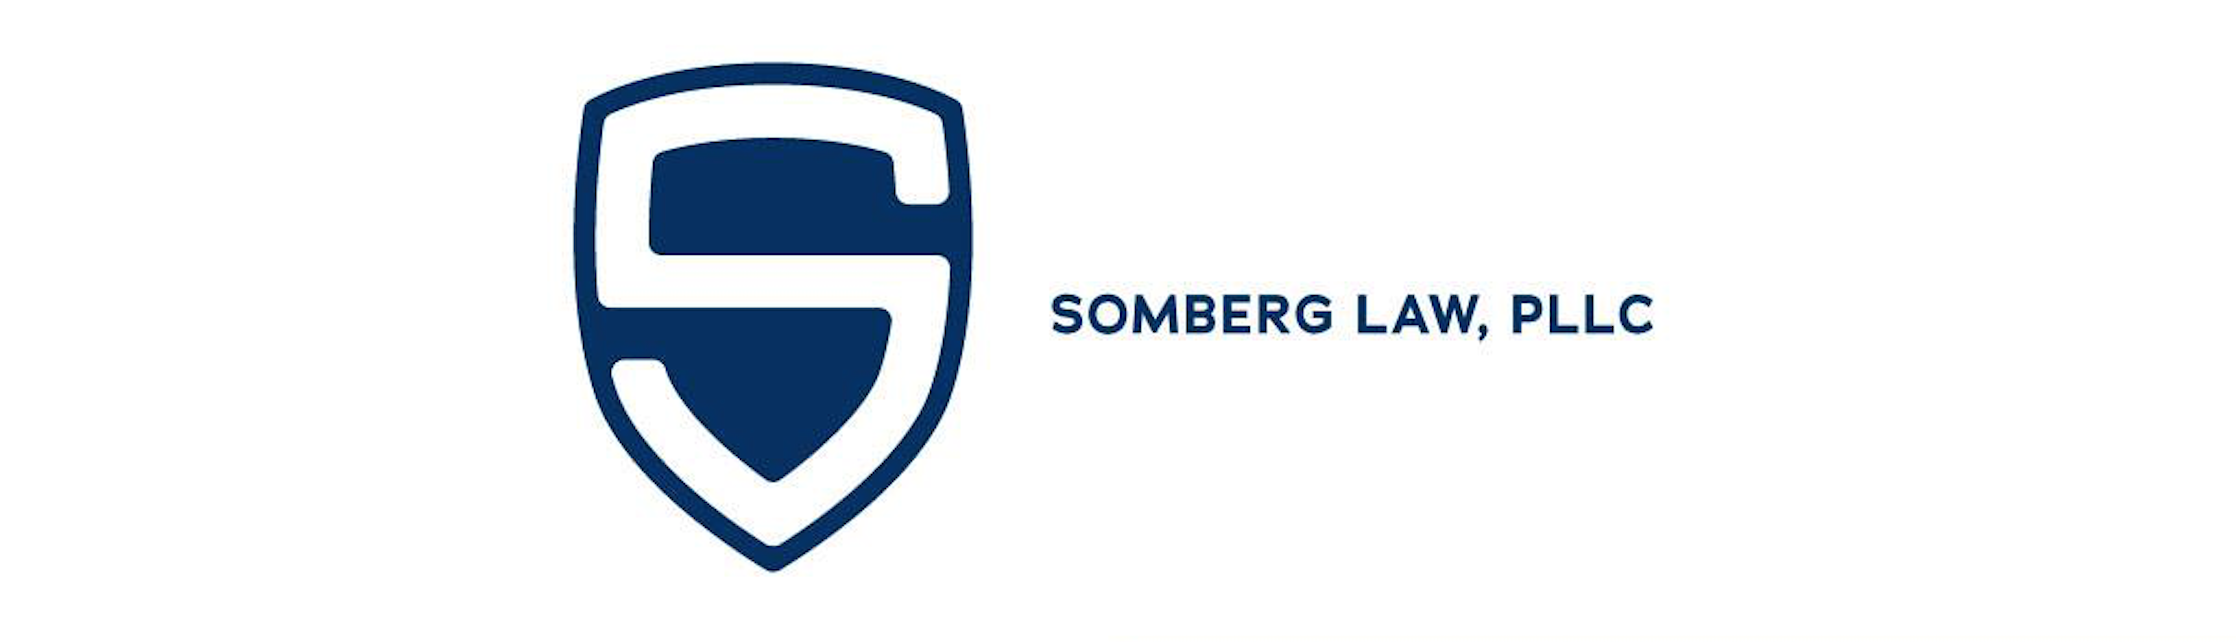 Somberg Law, PLLC Logo